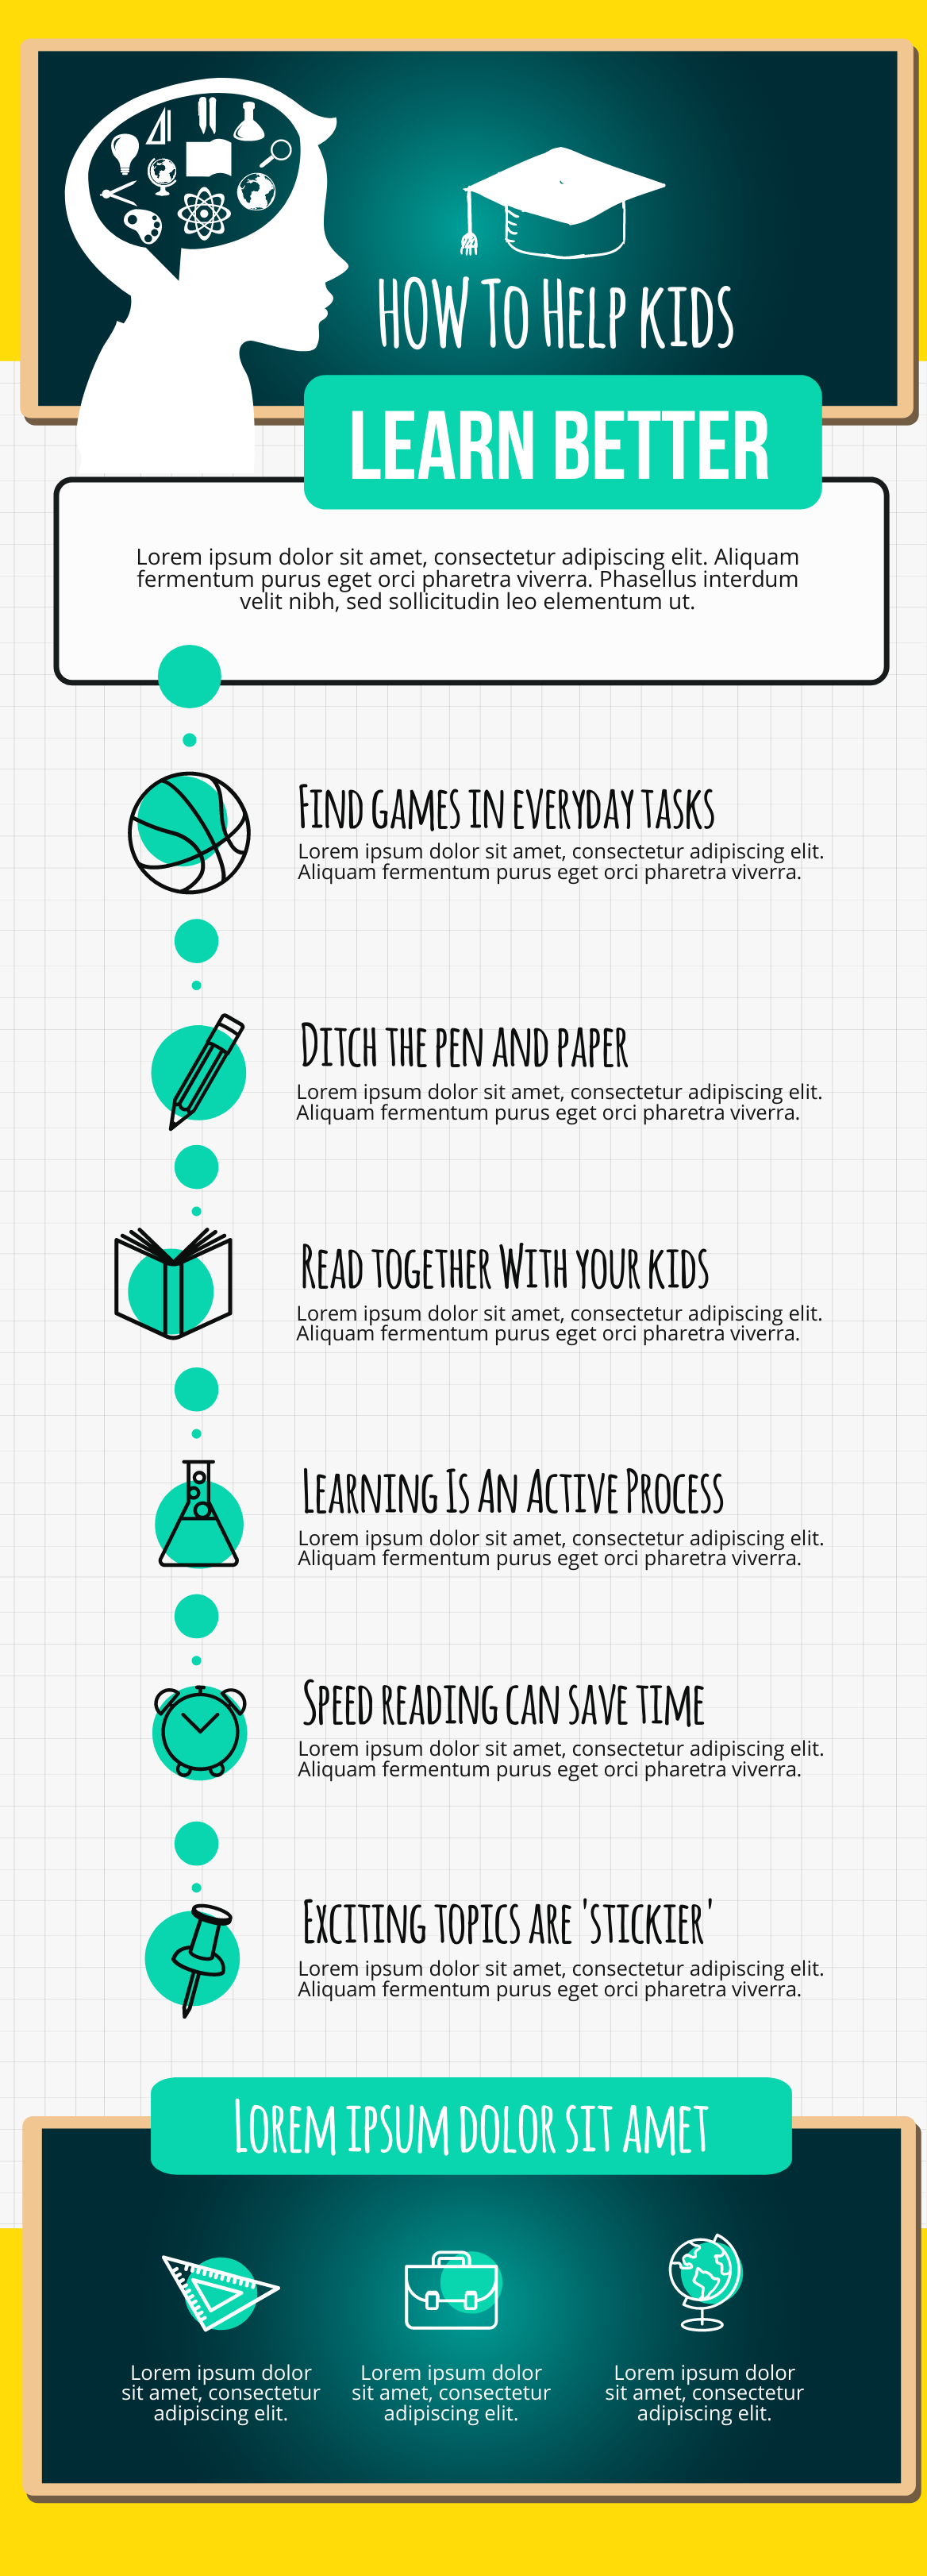 an infographic about helping kids learn better